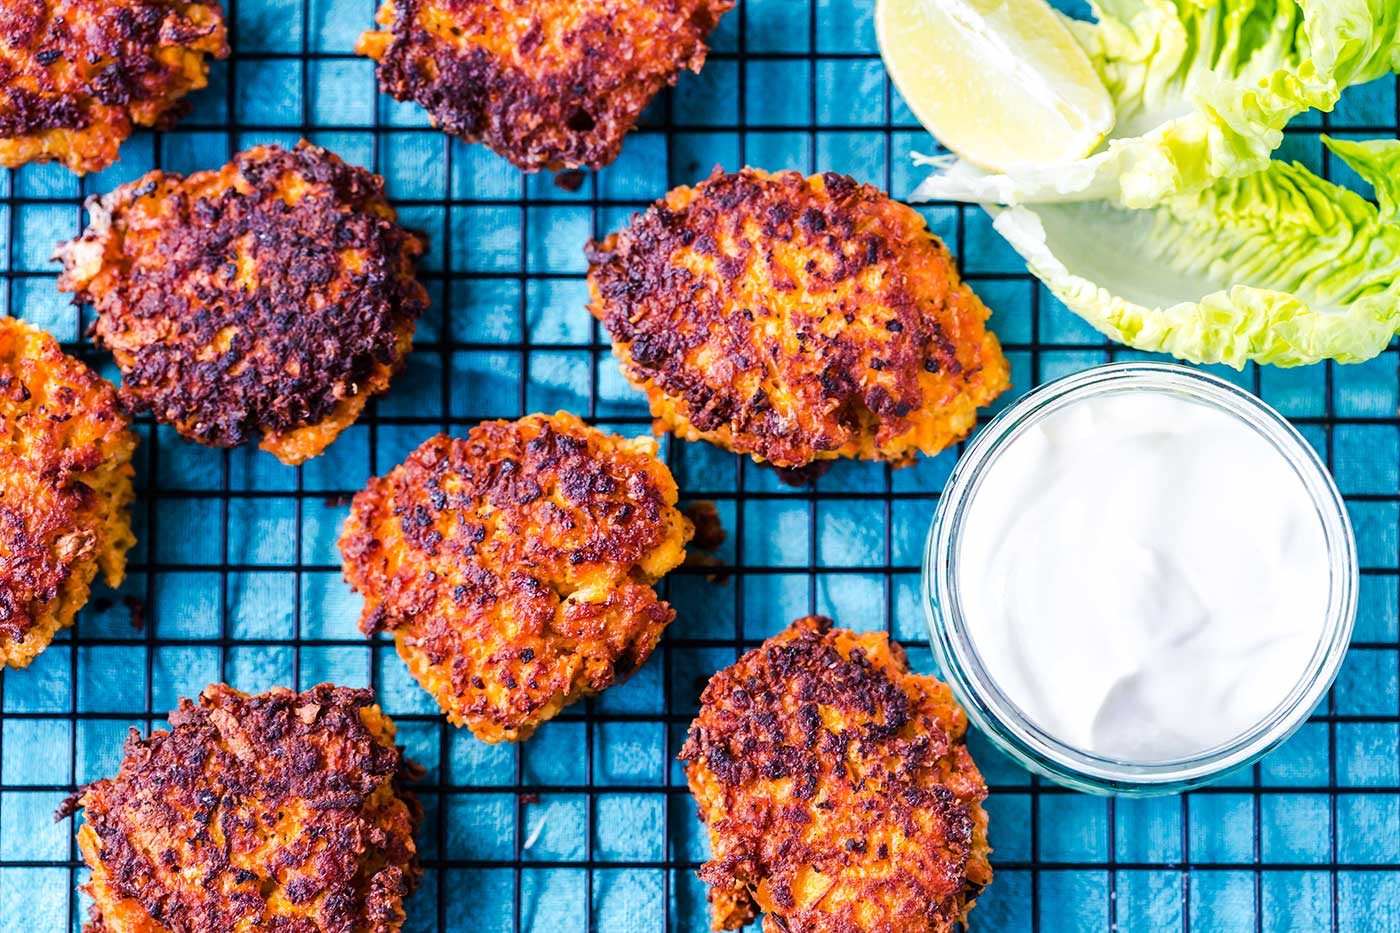 Carrot-and-Sweet-Potato-Fritters-Thermomix-Recipe